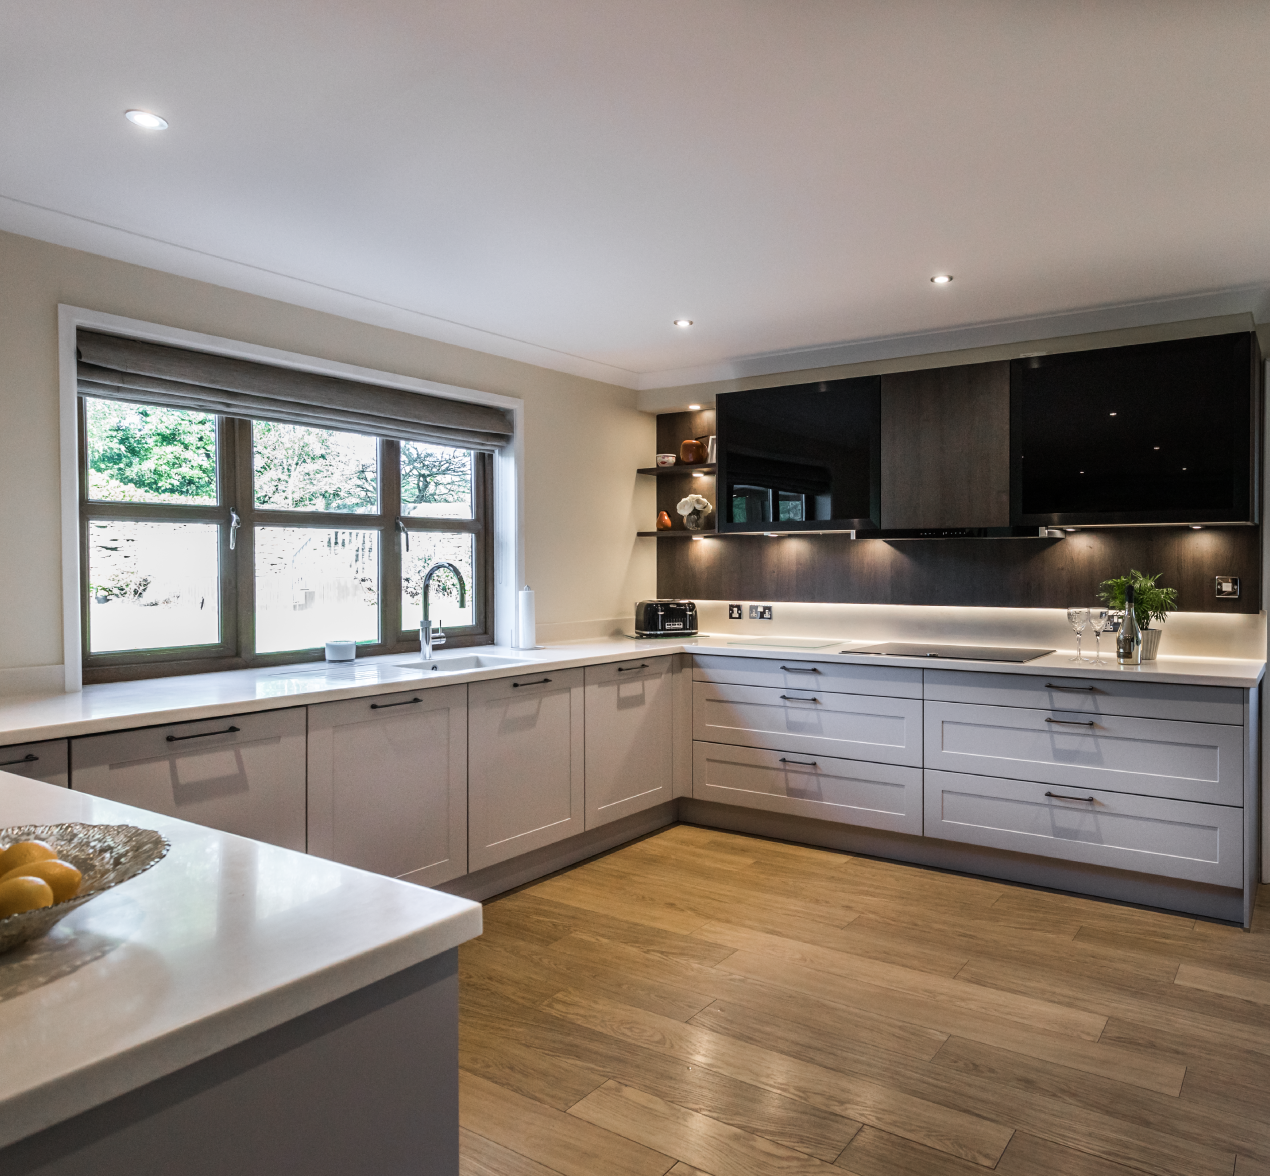 A beautiful, classic kitchen with modern accents and innovative features